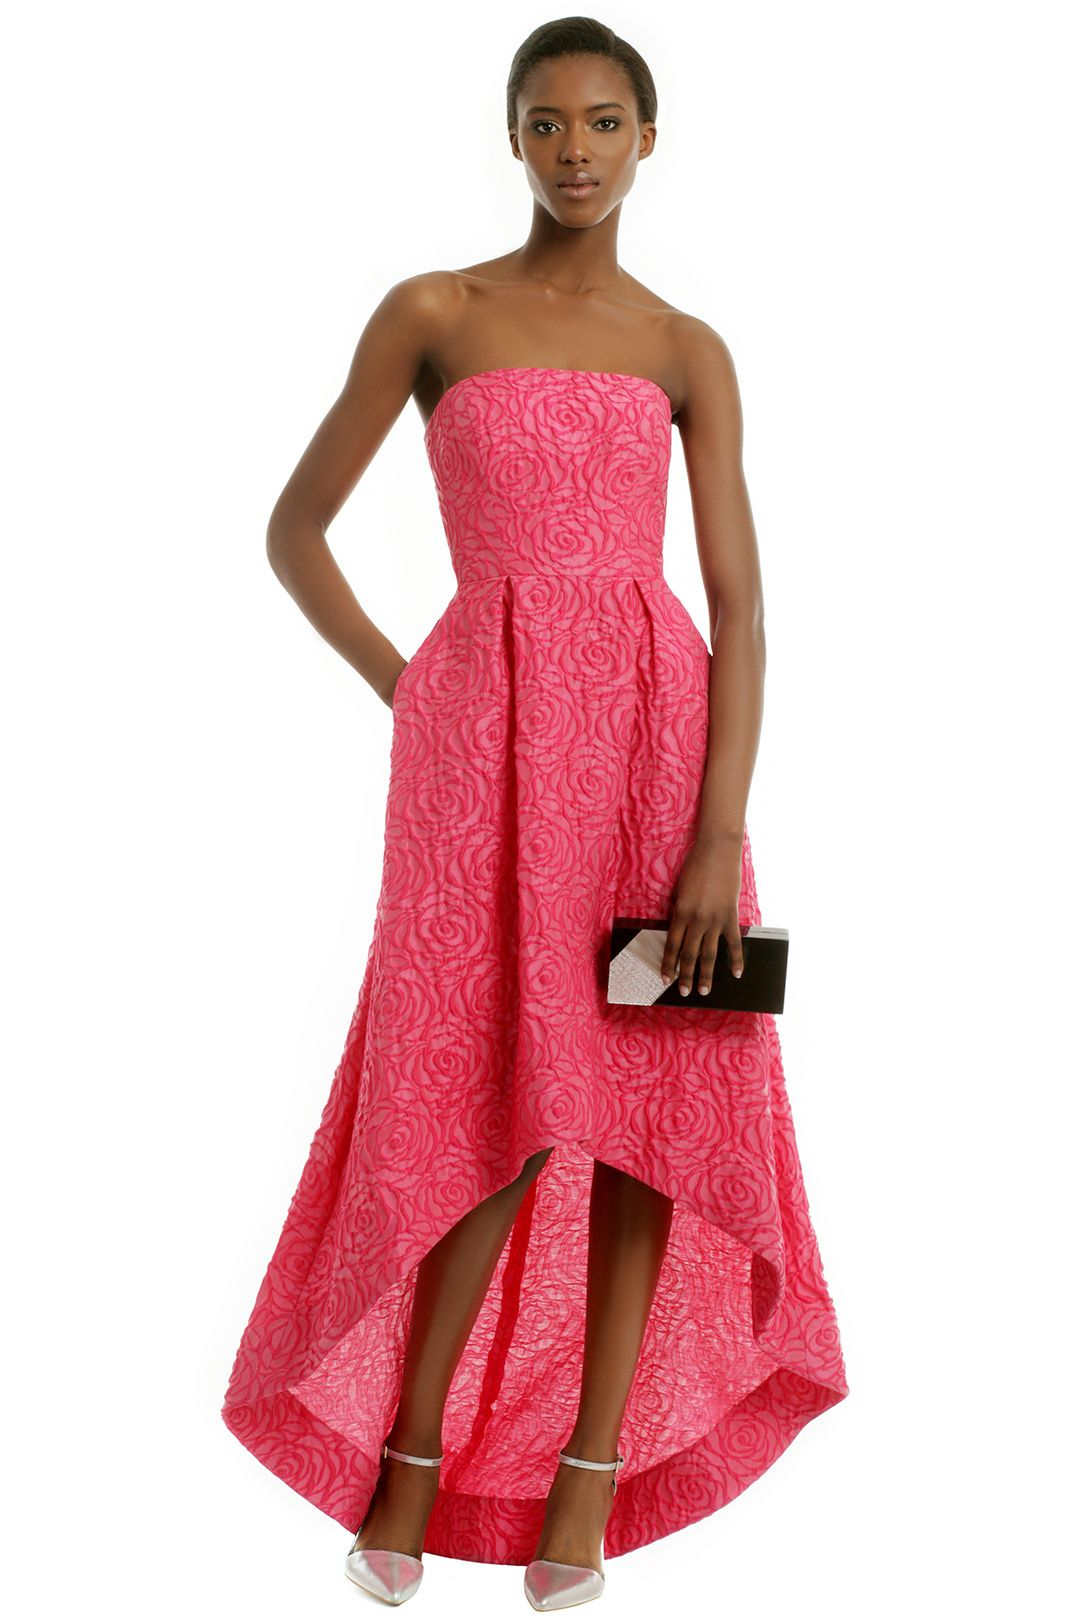 perfect places to find super cheap and stunning af prom dresses